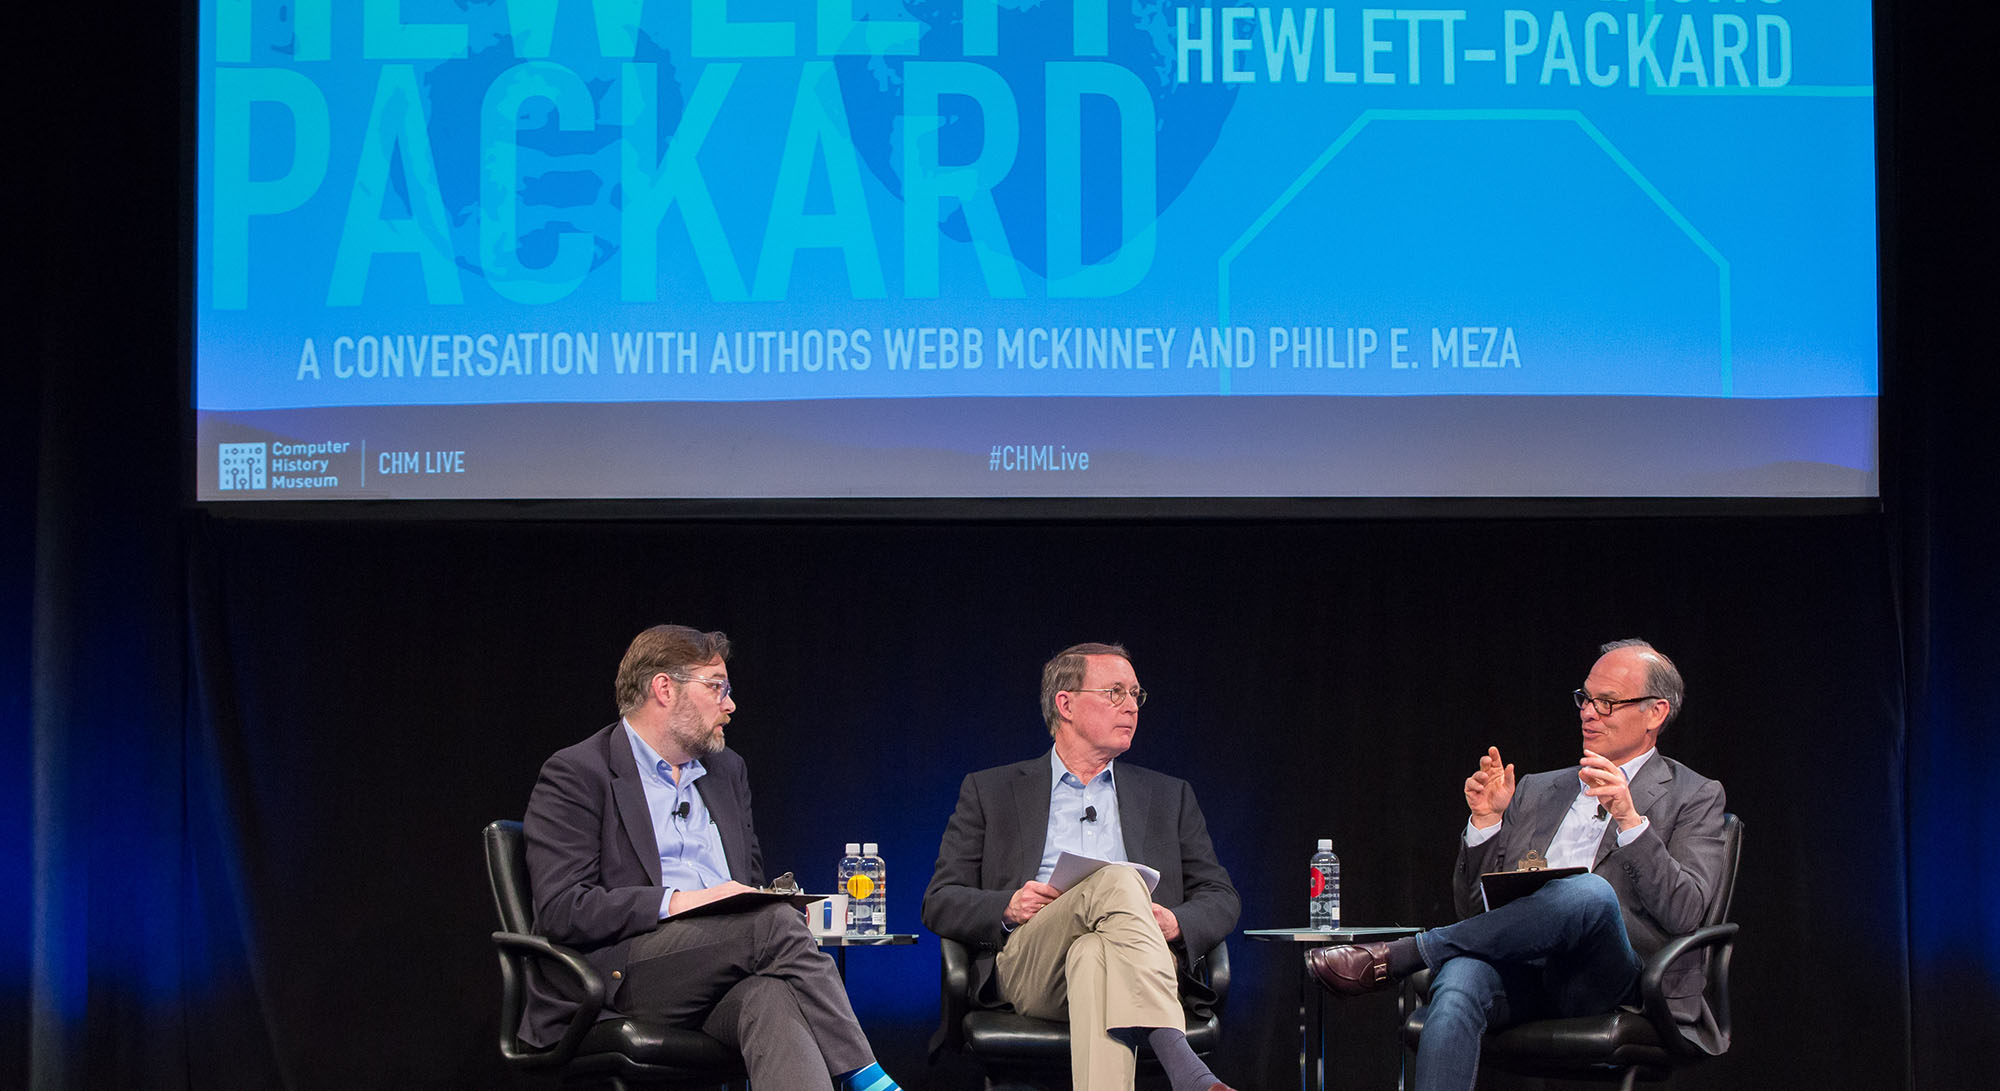 <em>Becoming Hewlett-Packard</em> authors Philip E. Meza and Webb McKinney discuss strategic leadership through HP's history.